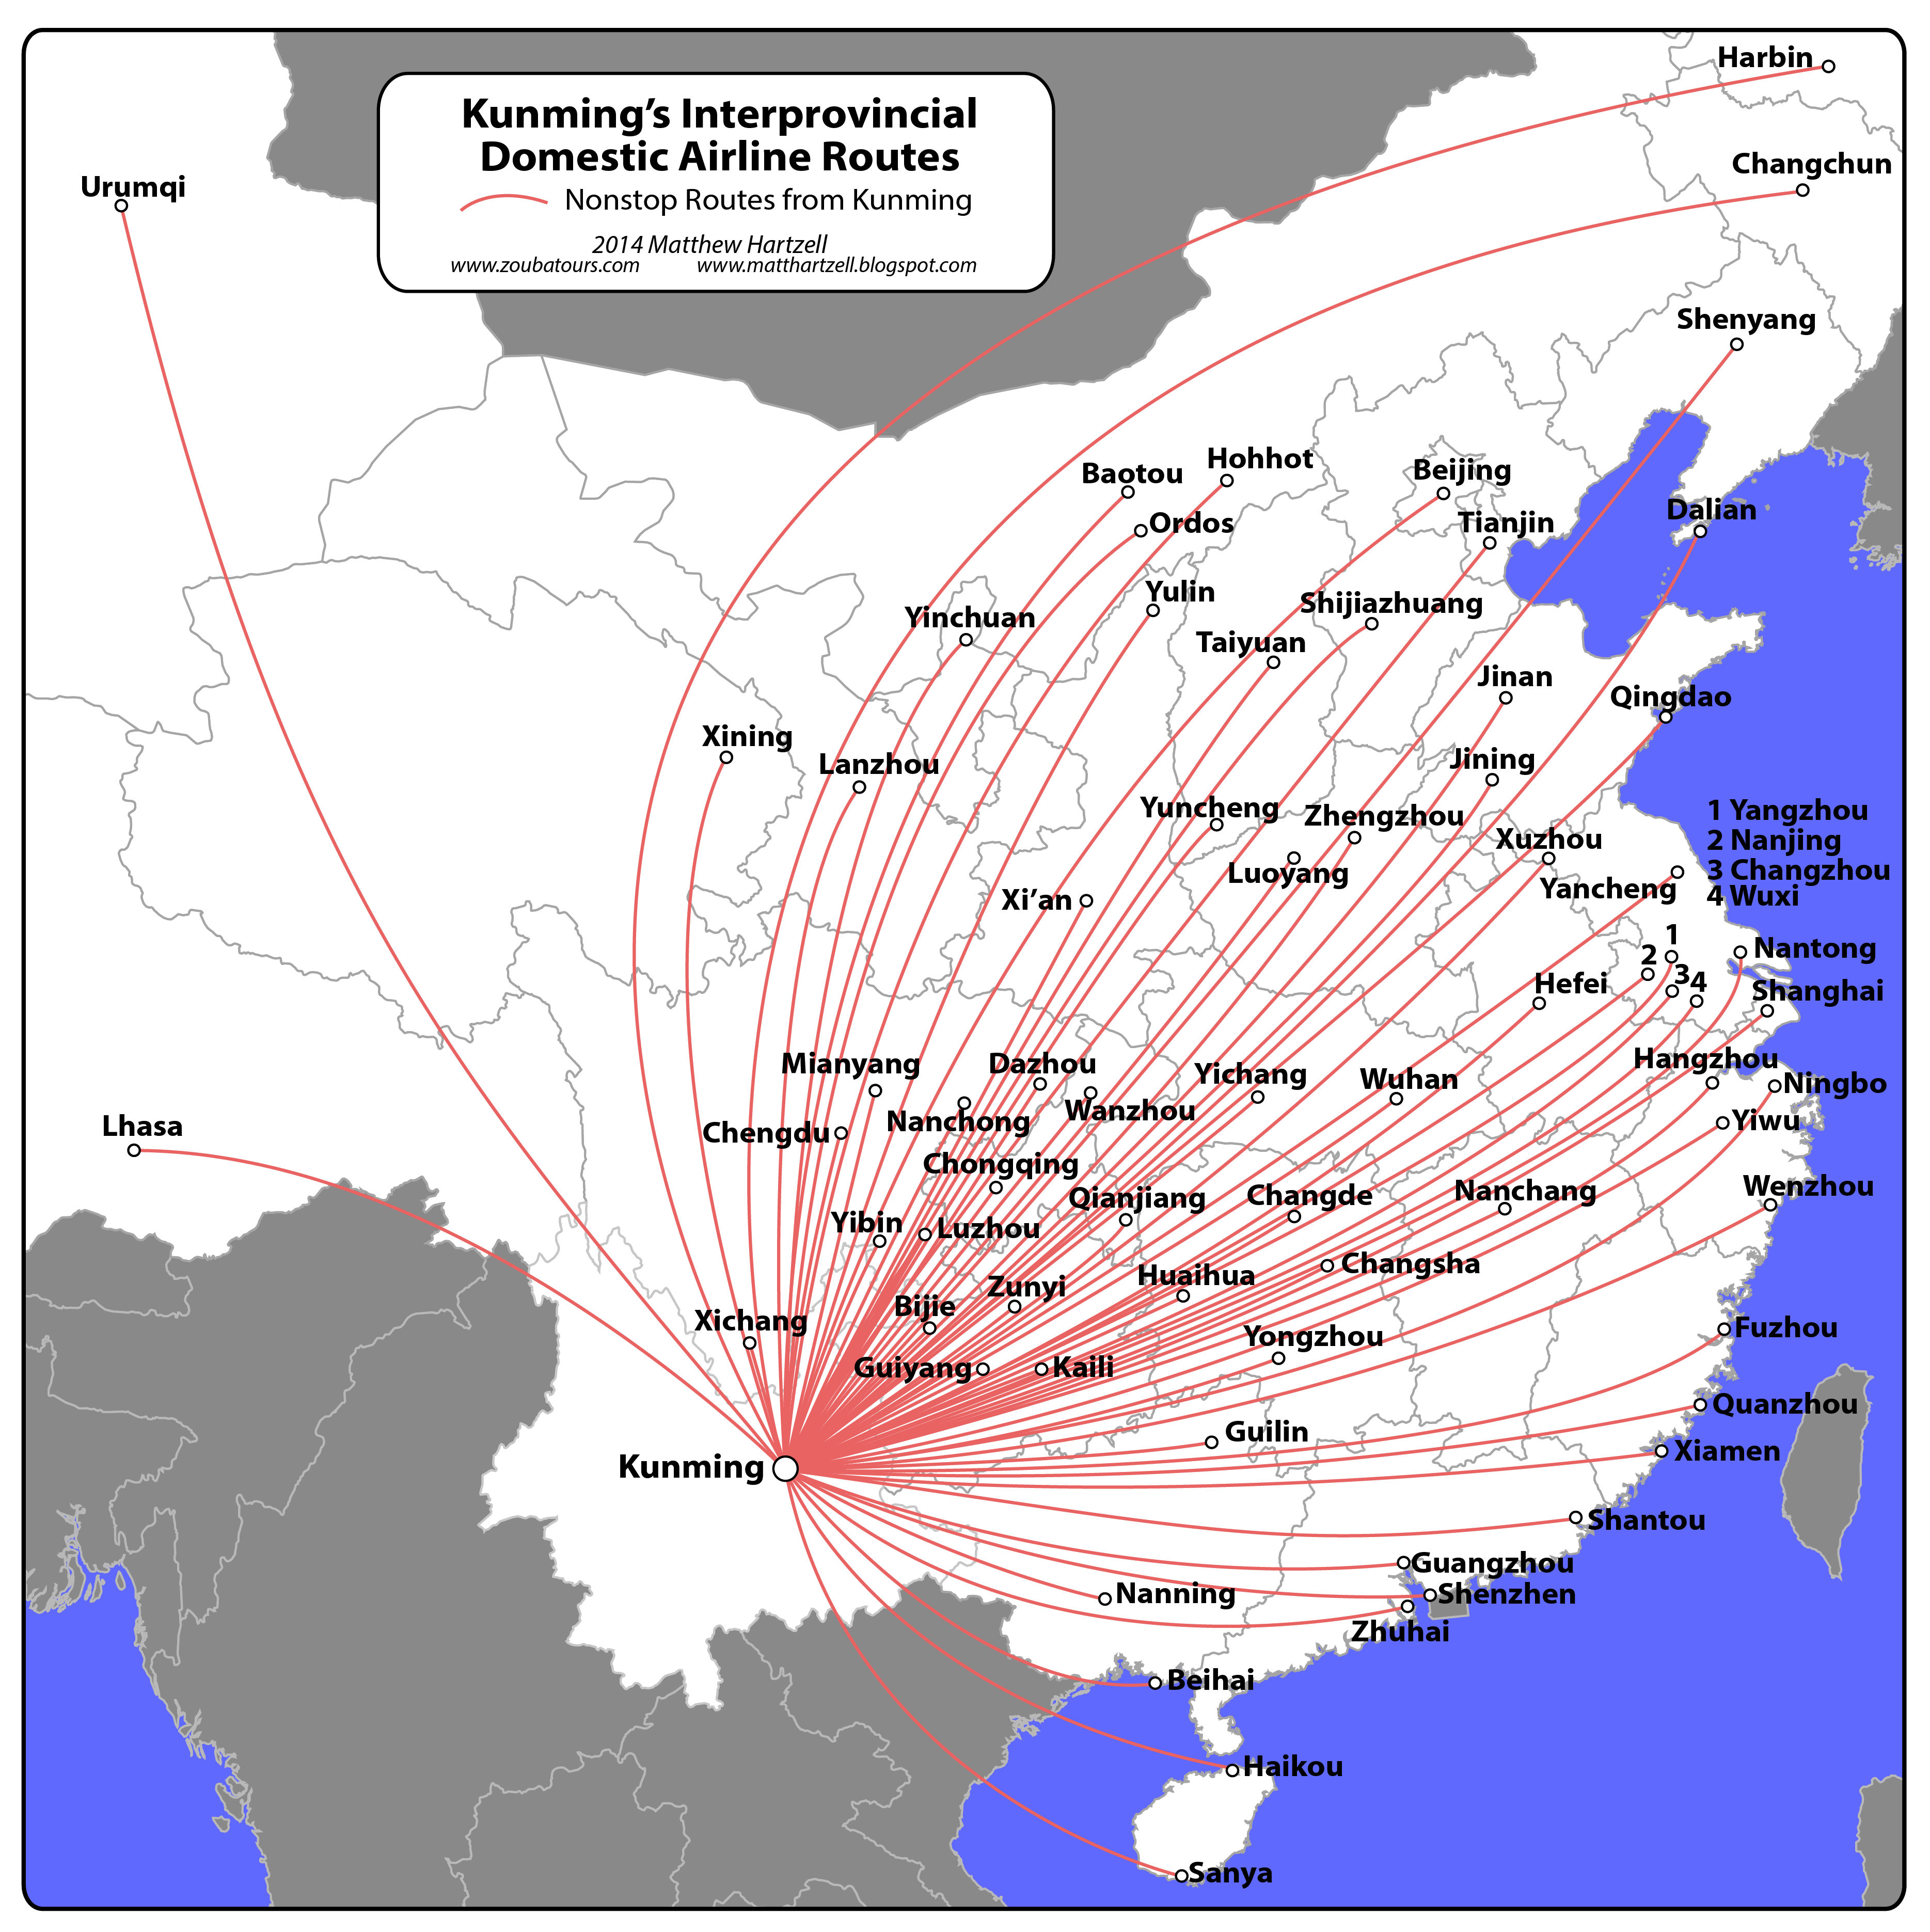 Airport International Connectivity Ranking China Vs US East By - Usa airports on the map